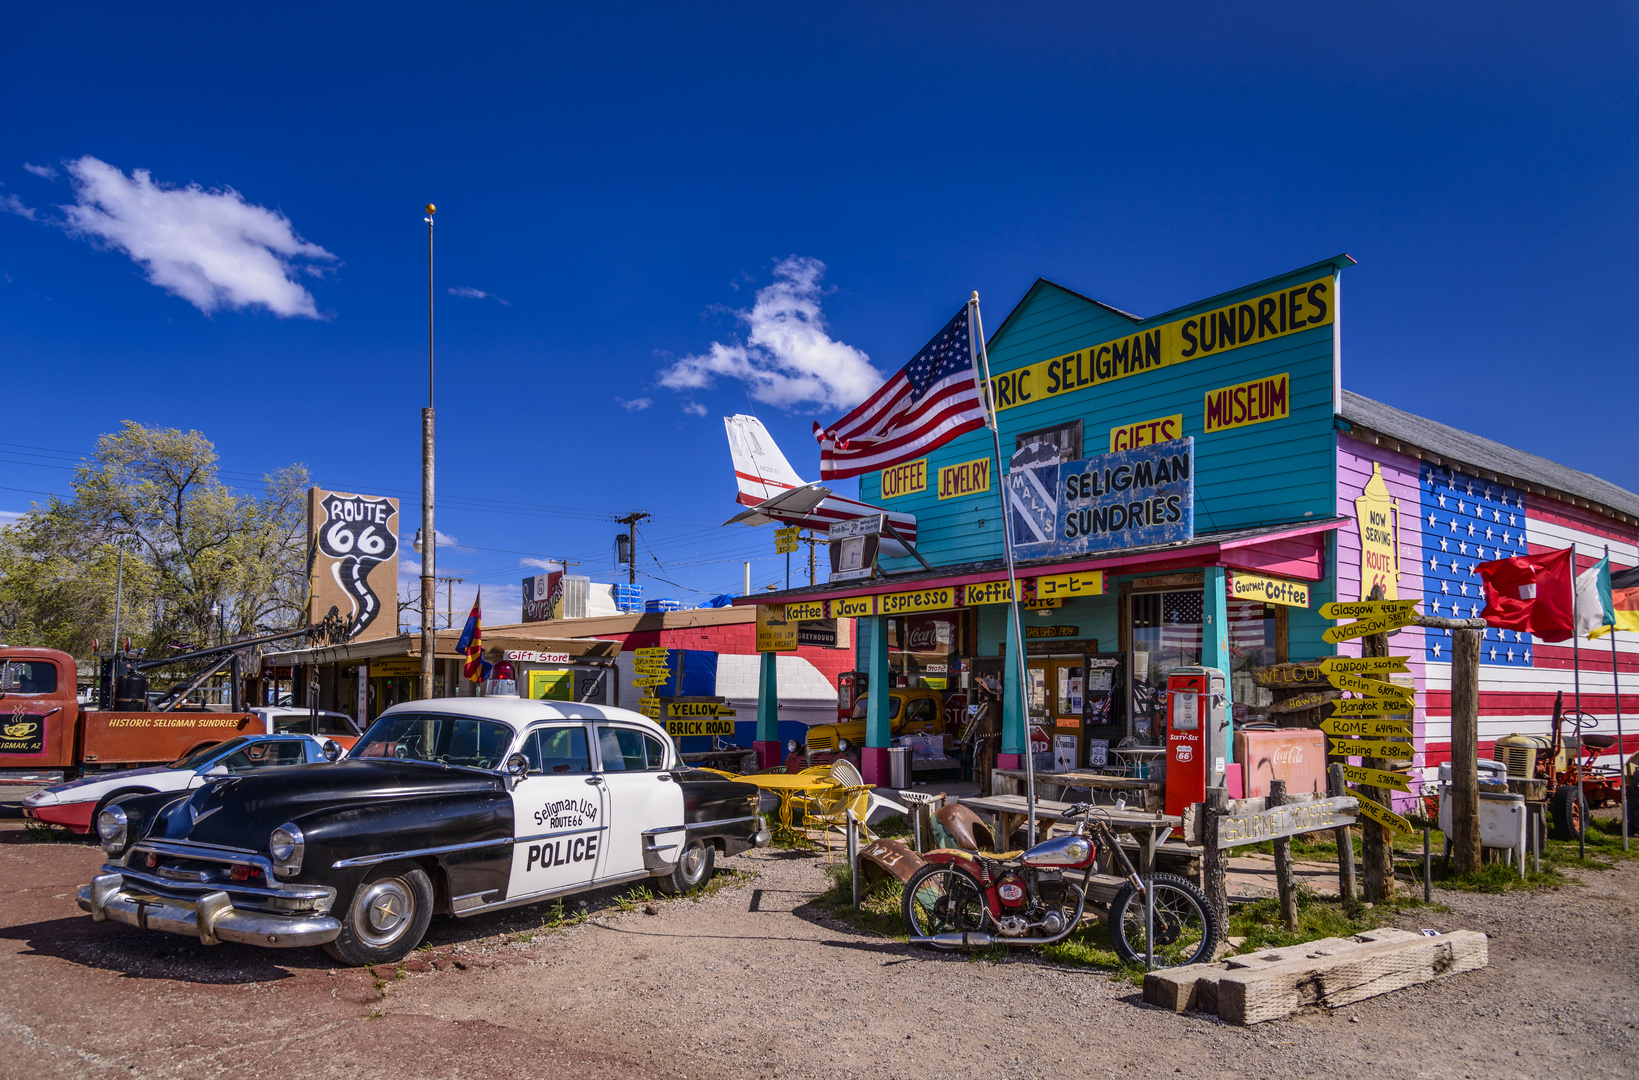 seligman sundries route 66 arizona usa foto bild architektur oldtimer auto bilder auf. Black Bedroom Furniture Sets. Home Design Ideas